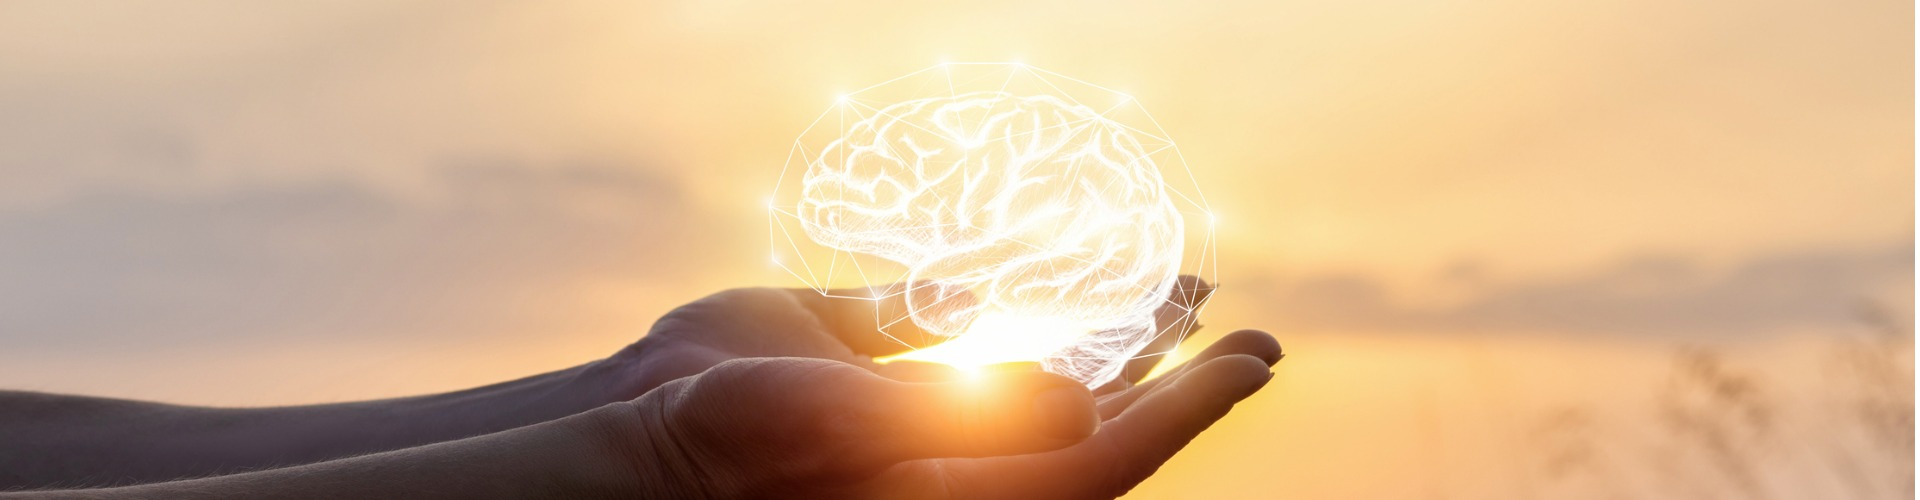 Image of hands cupping a white line drawing of a brain in the sun